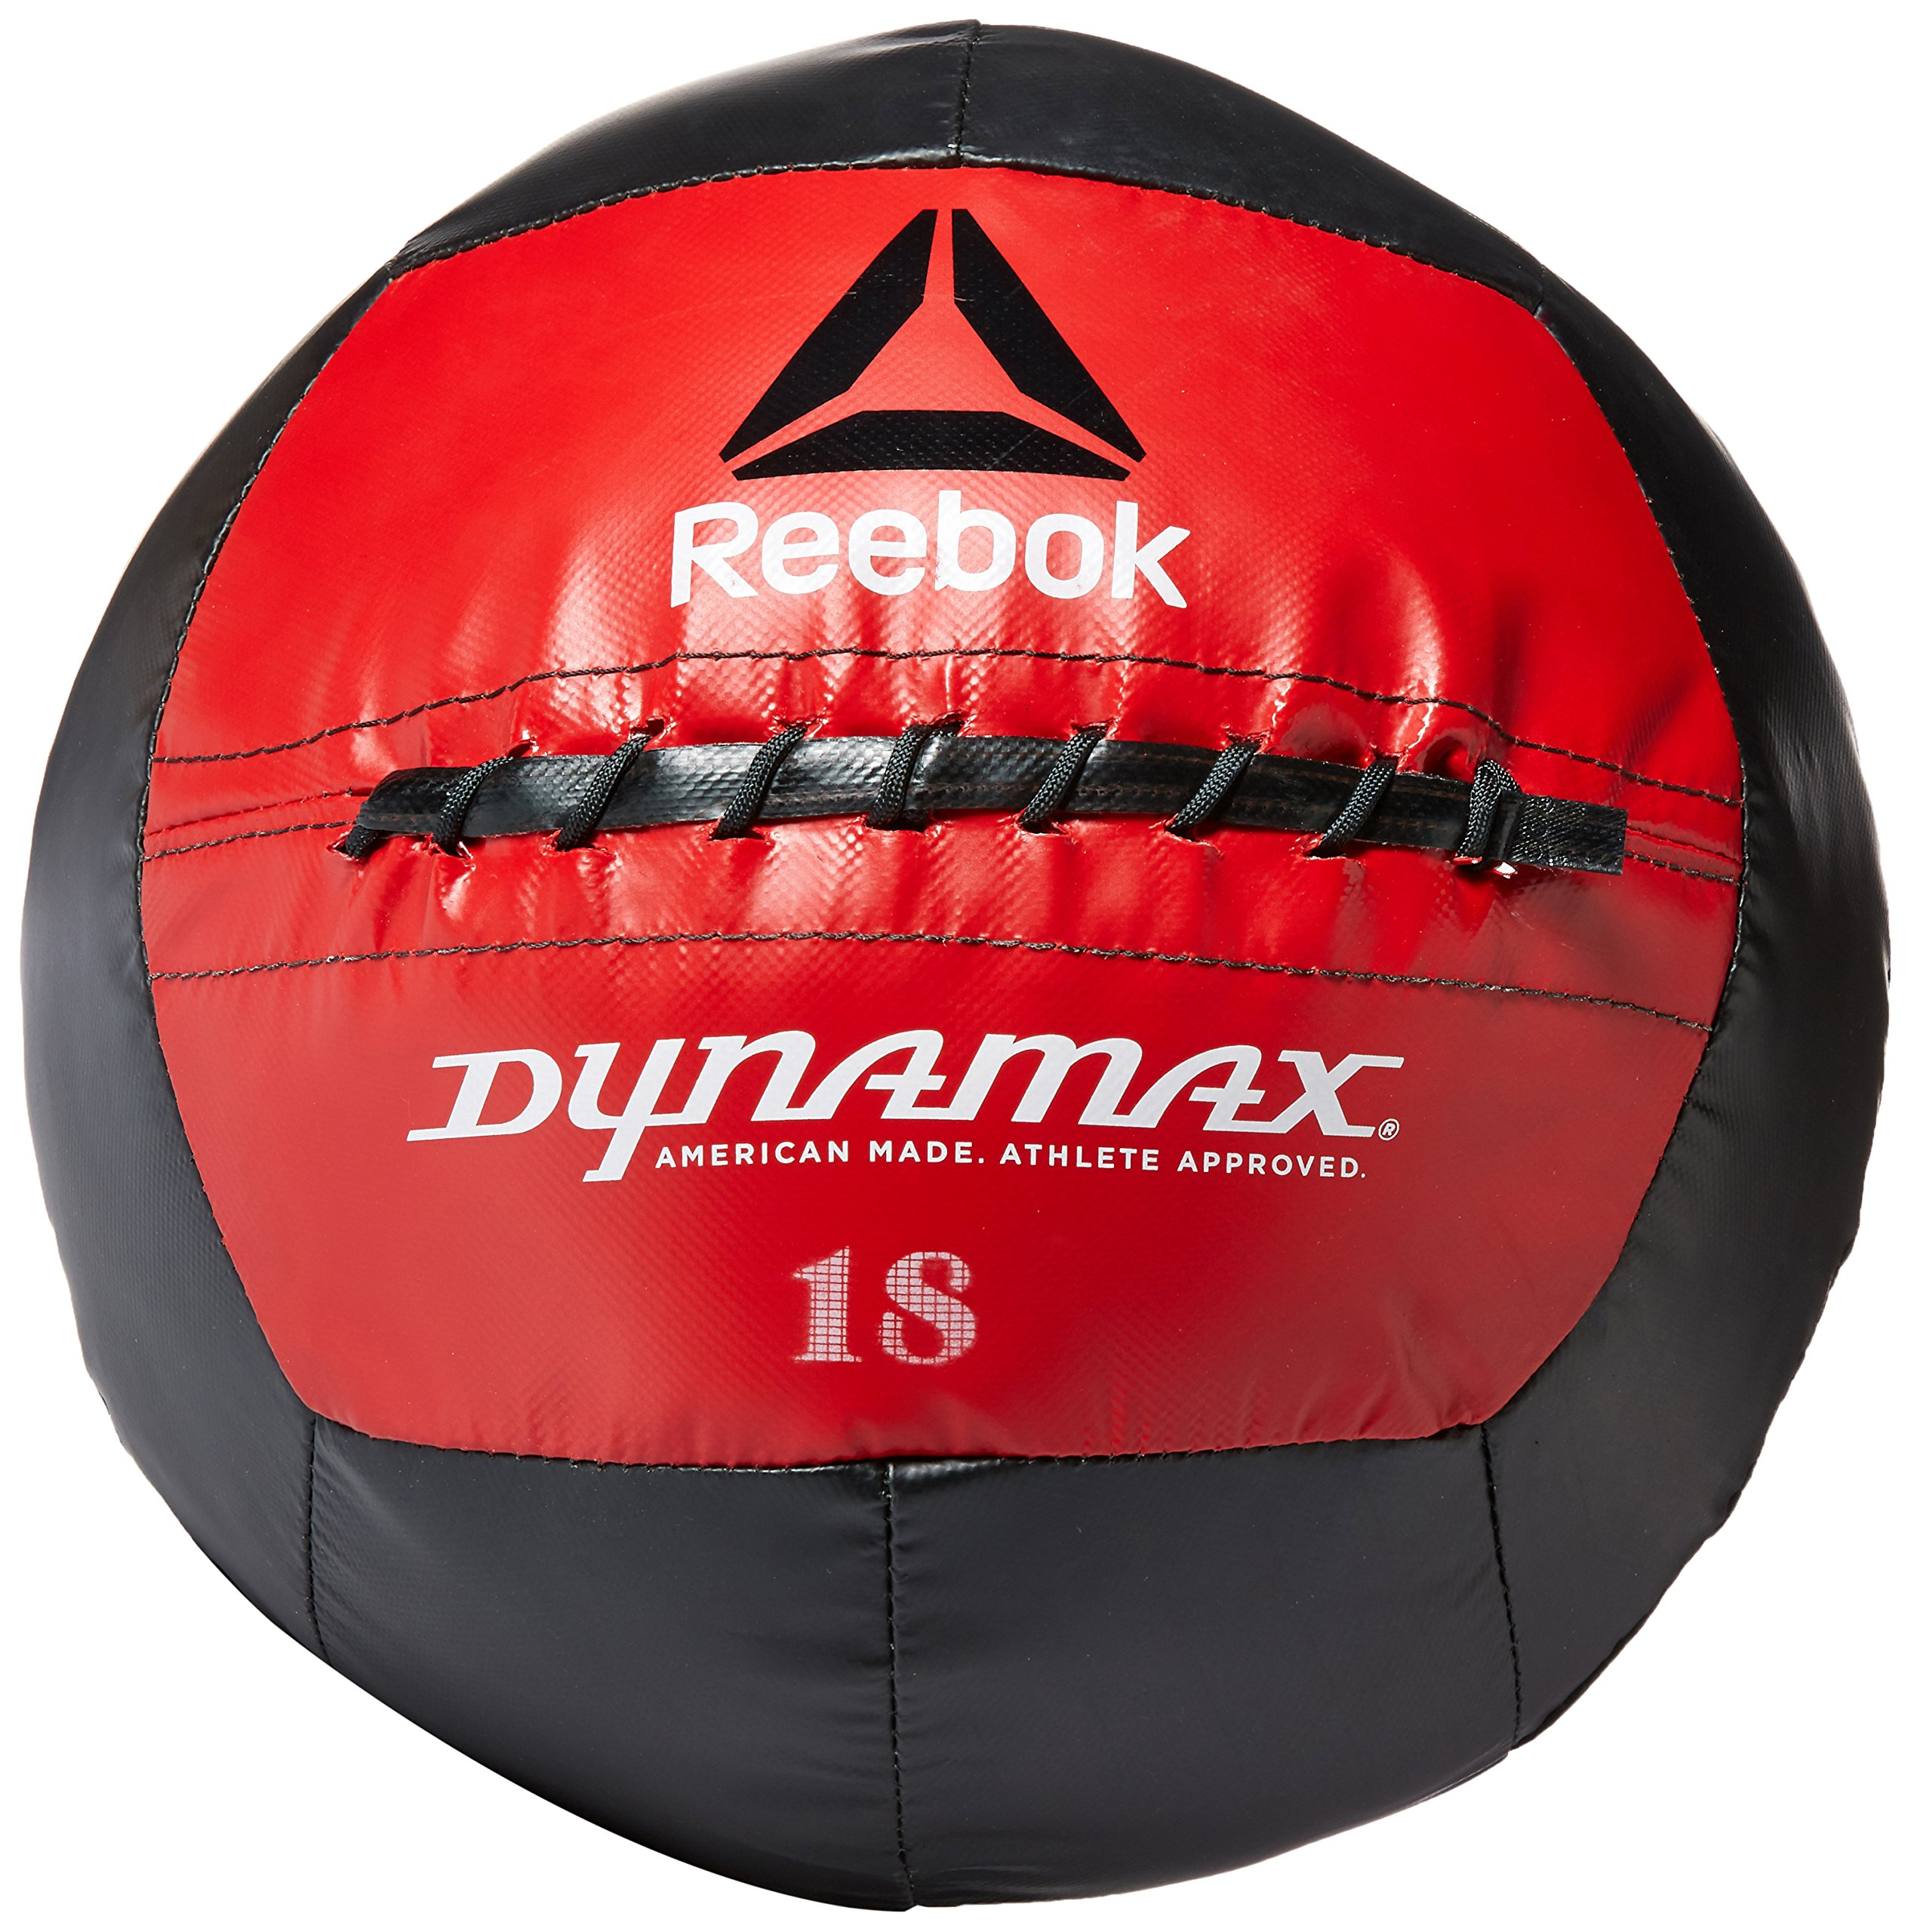 Reebok Soft-Shell Medicine Ball by Dynamax, 18 lbs